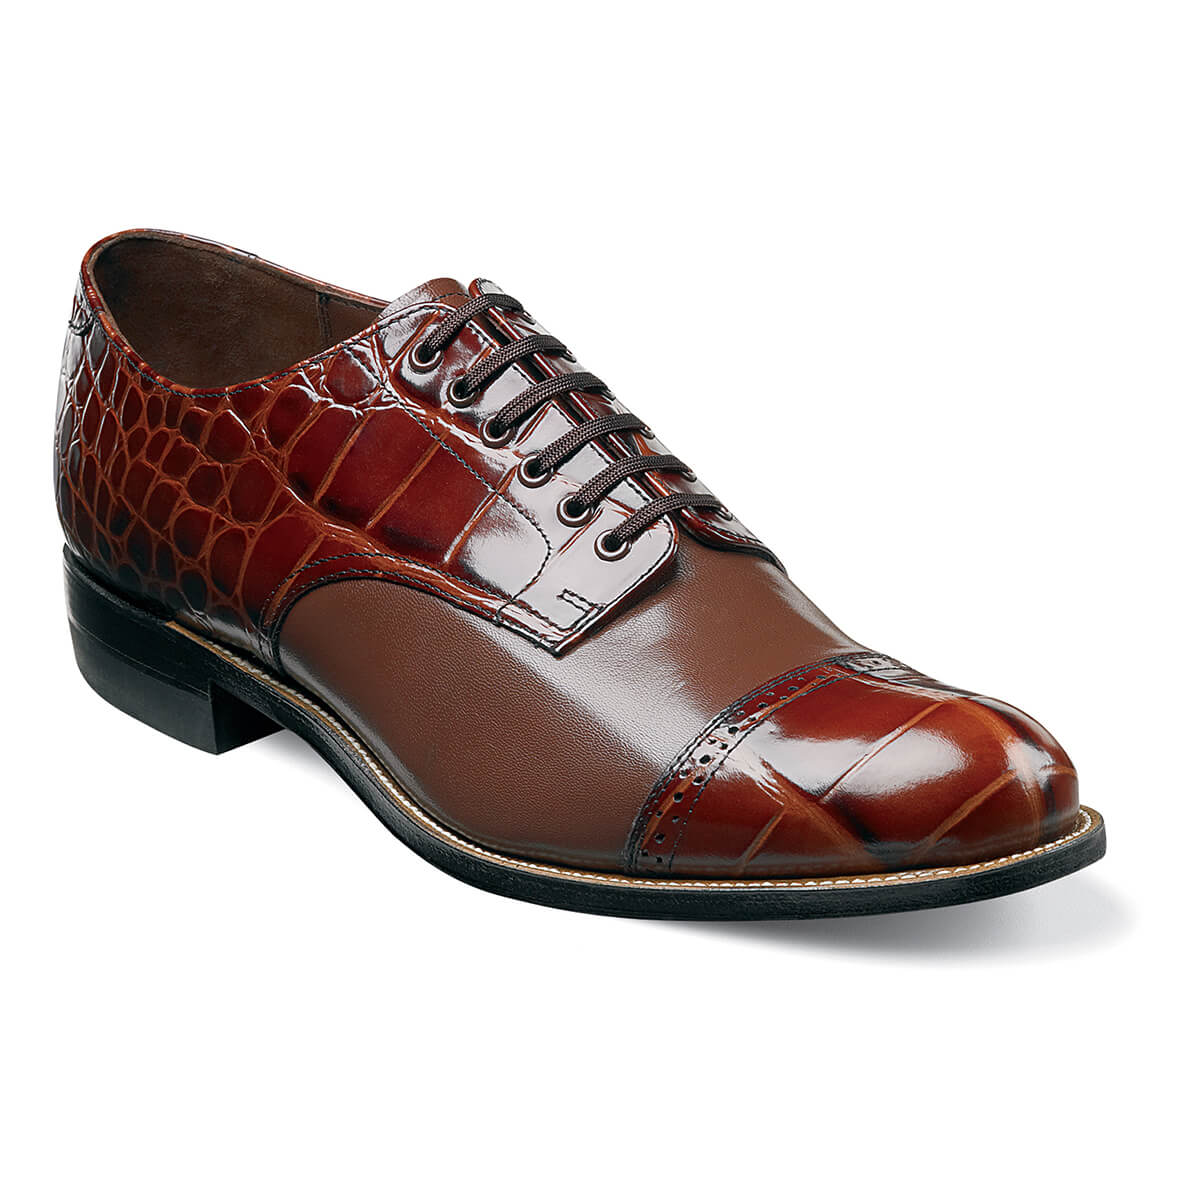 Madison Croc Cap Toe Oxford